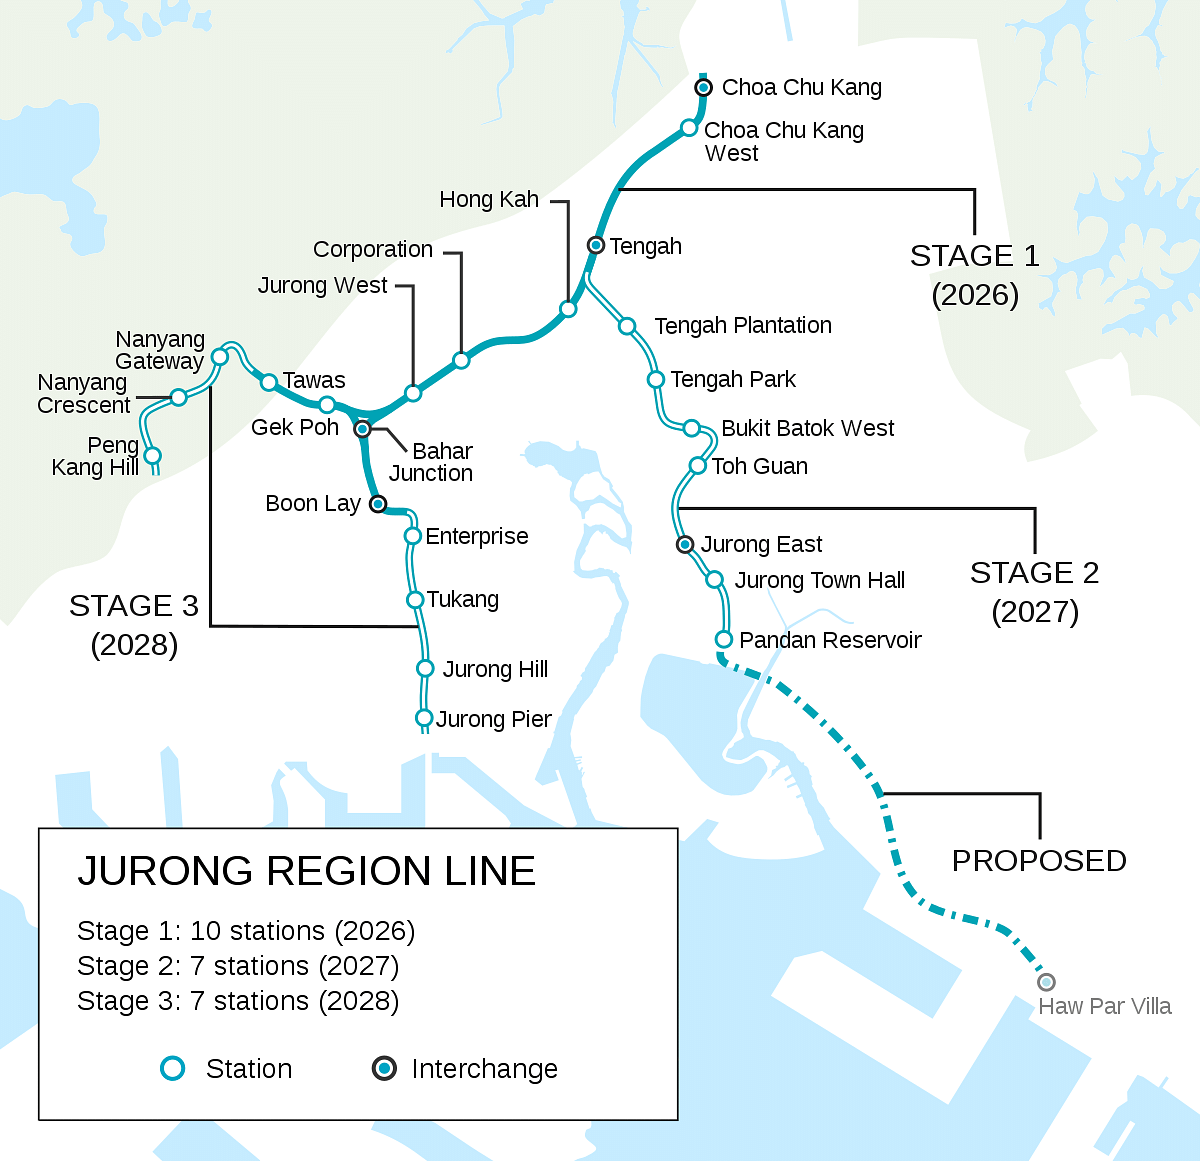 Civil Contracts for 4 Stations for Jurong Region Line in Singapore